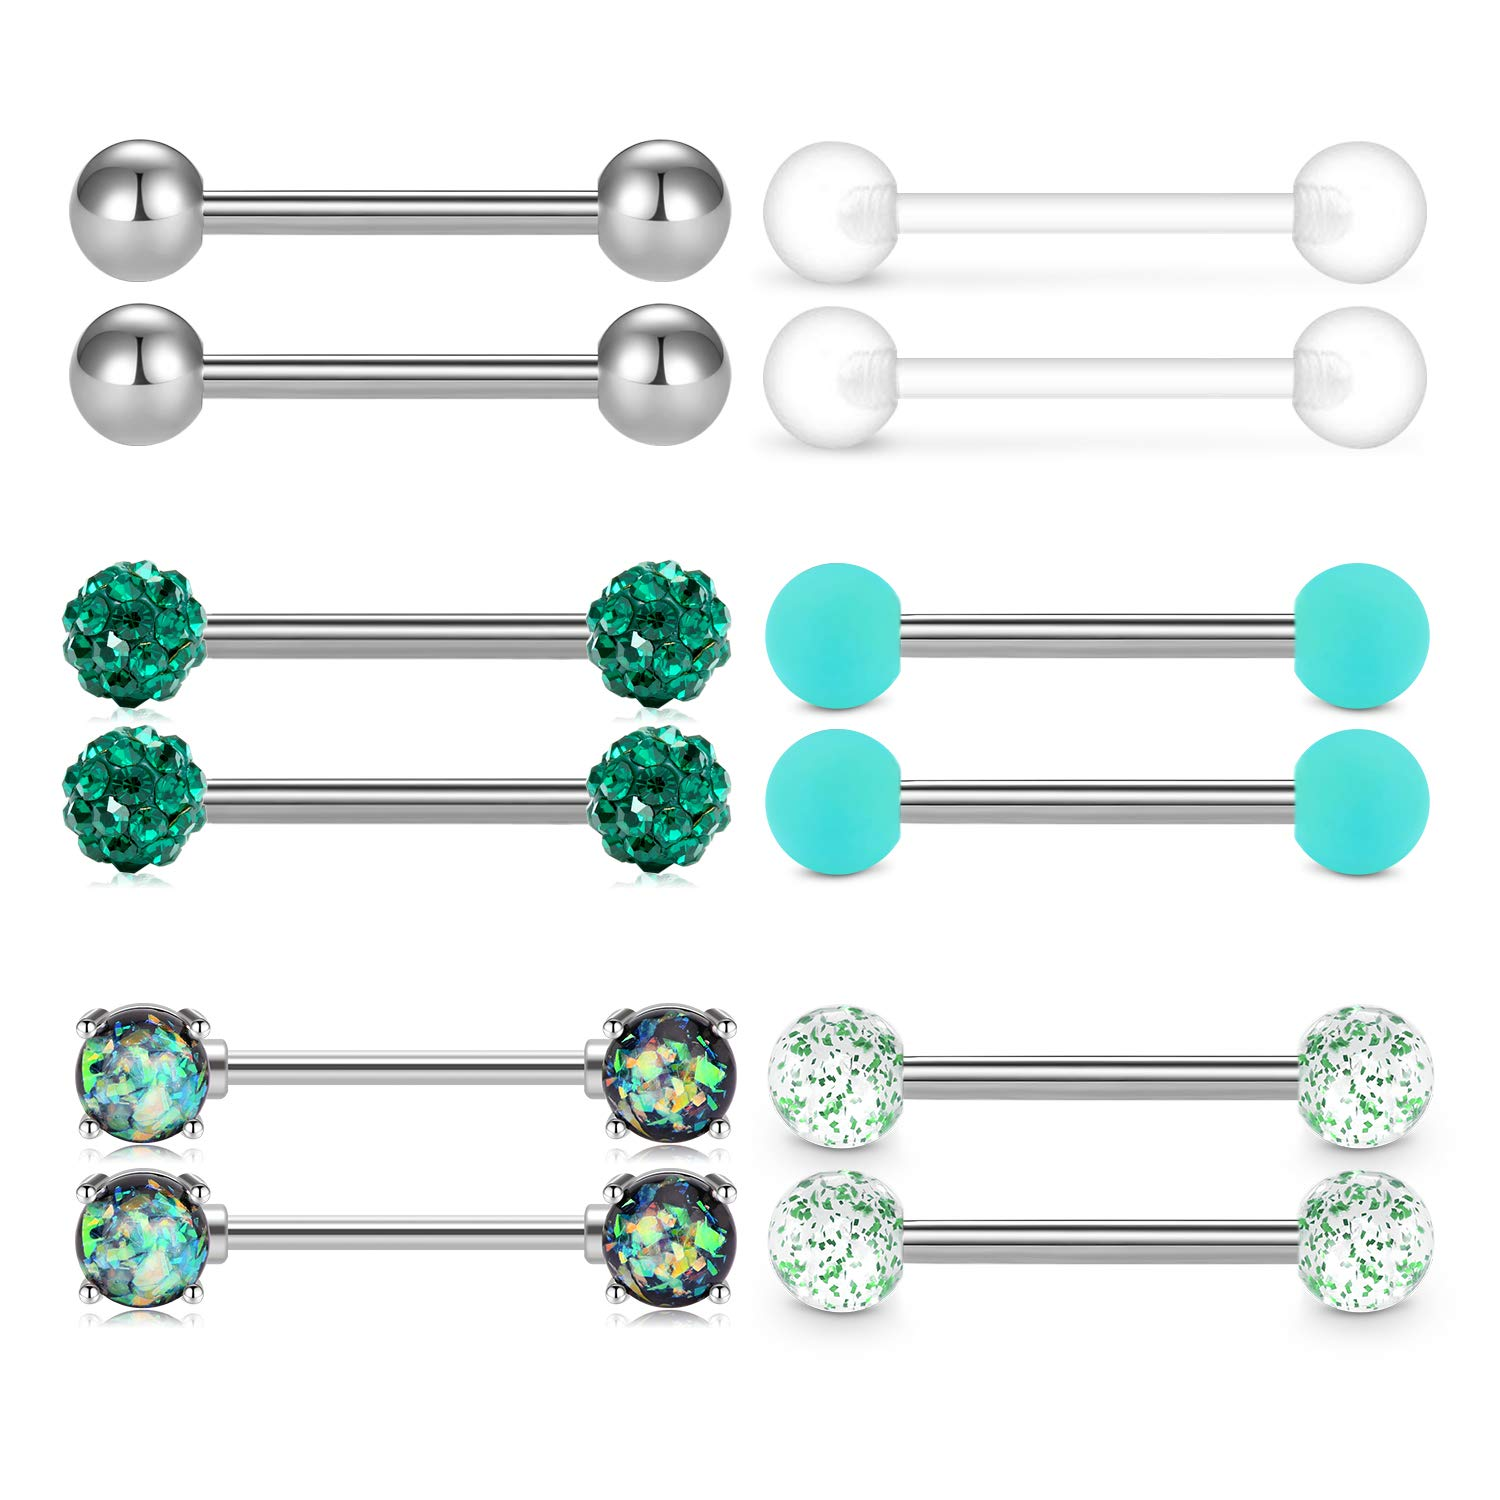 QWALIT Tongue Nipple Rings 14G Nipplerings Straight Barbell Surgical Steel Viper Tongue Tip Piercing Nipple Piercing Bar & Flexible Retainer for Women Girls 5/8'' 16mm 6pairs by QWALIT